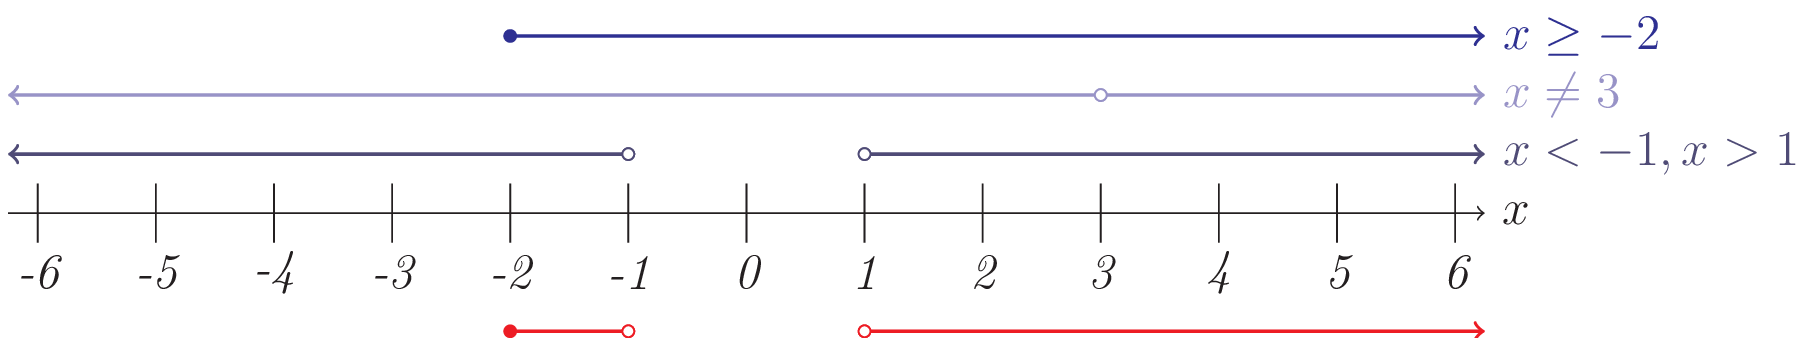 BOOK-figure1.png